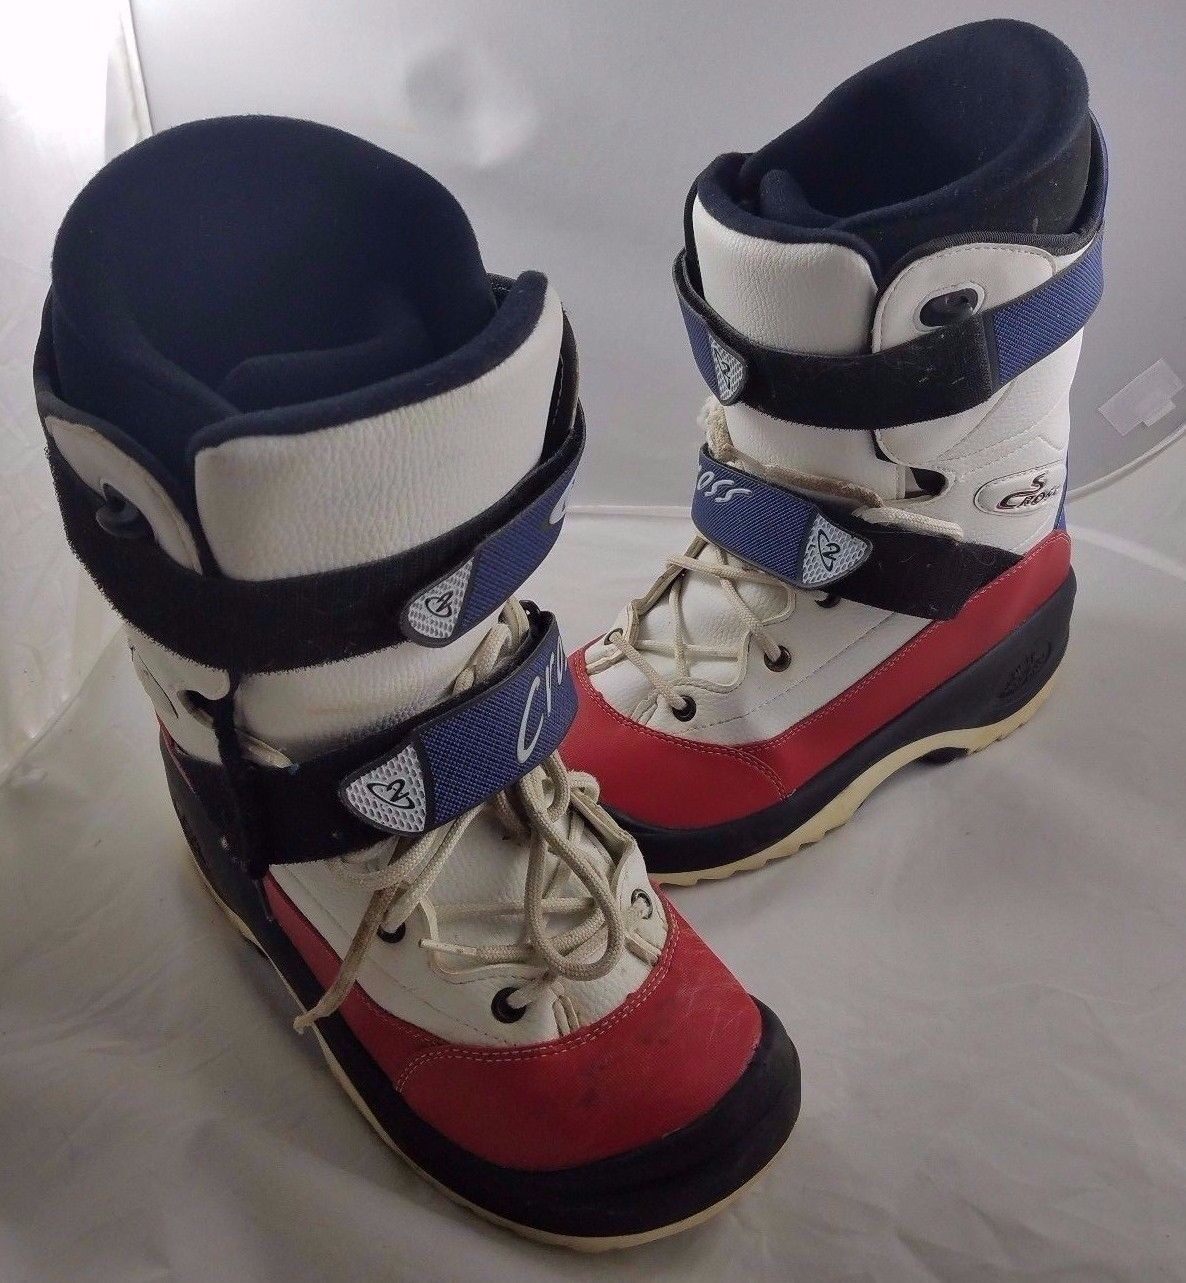 Mens Squib Oxygen O2 S Cross Snowboarding Boots Size 13.5  Red White bluee